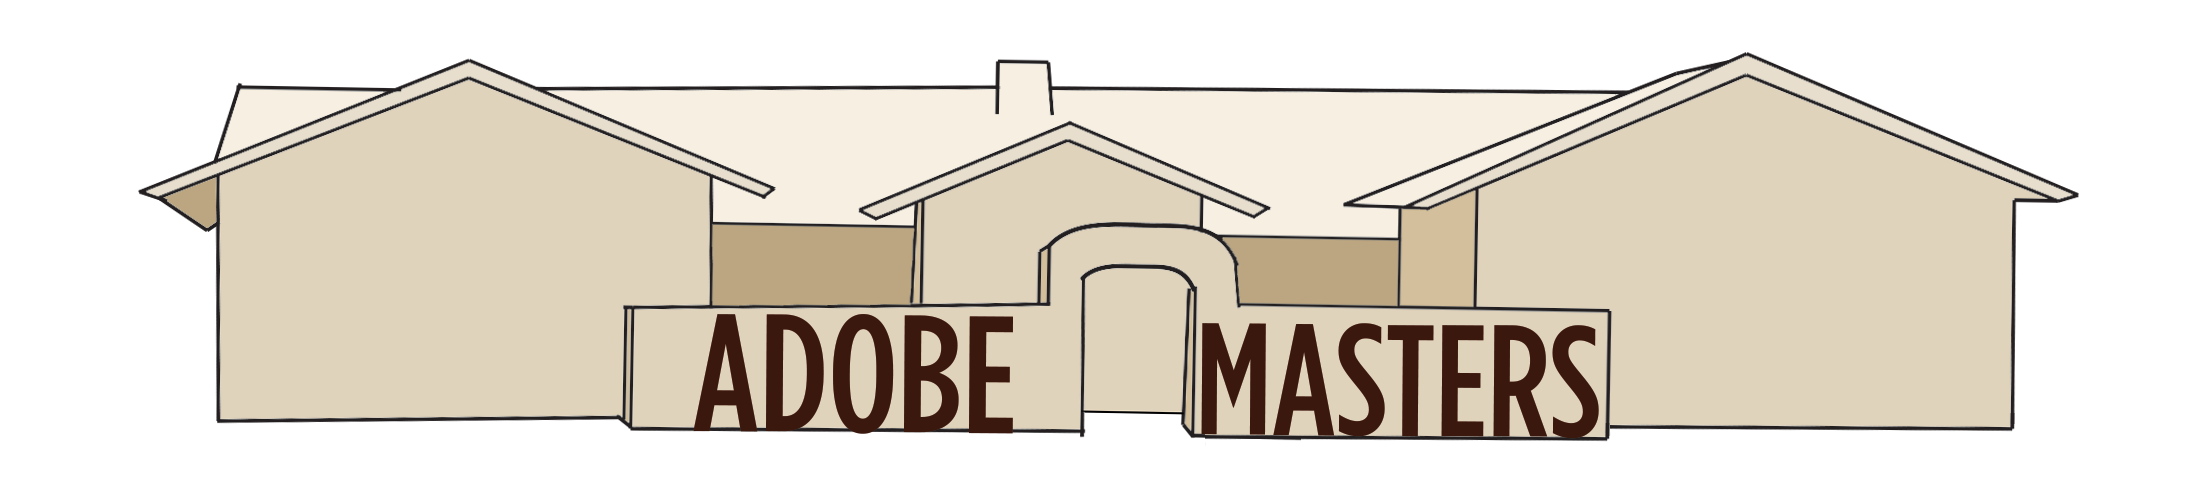 adobe masters u2013 how to repair and maintain adobe homes